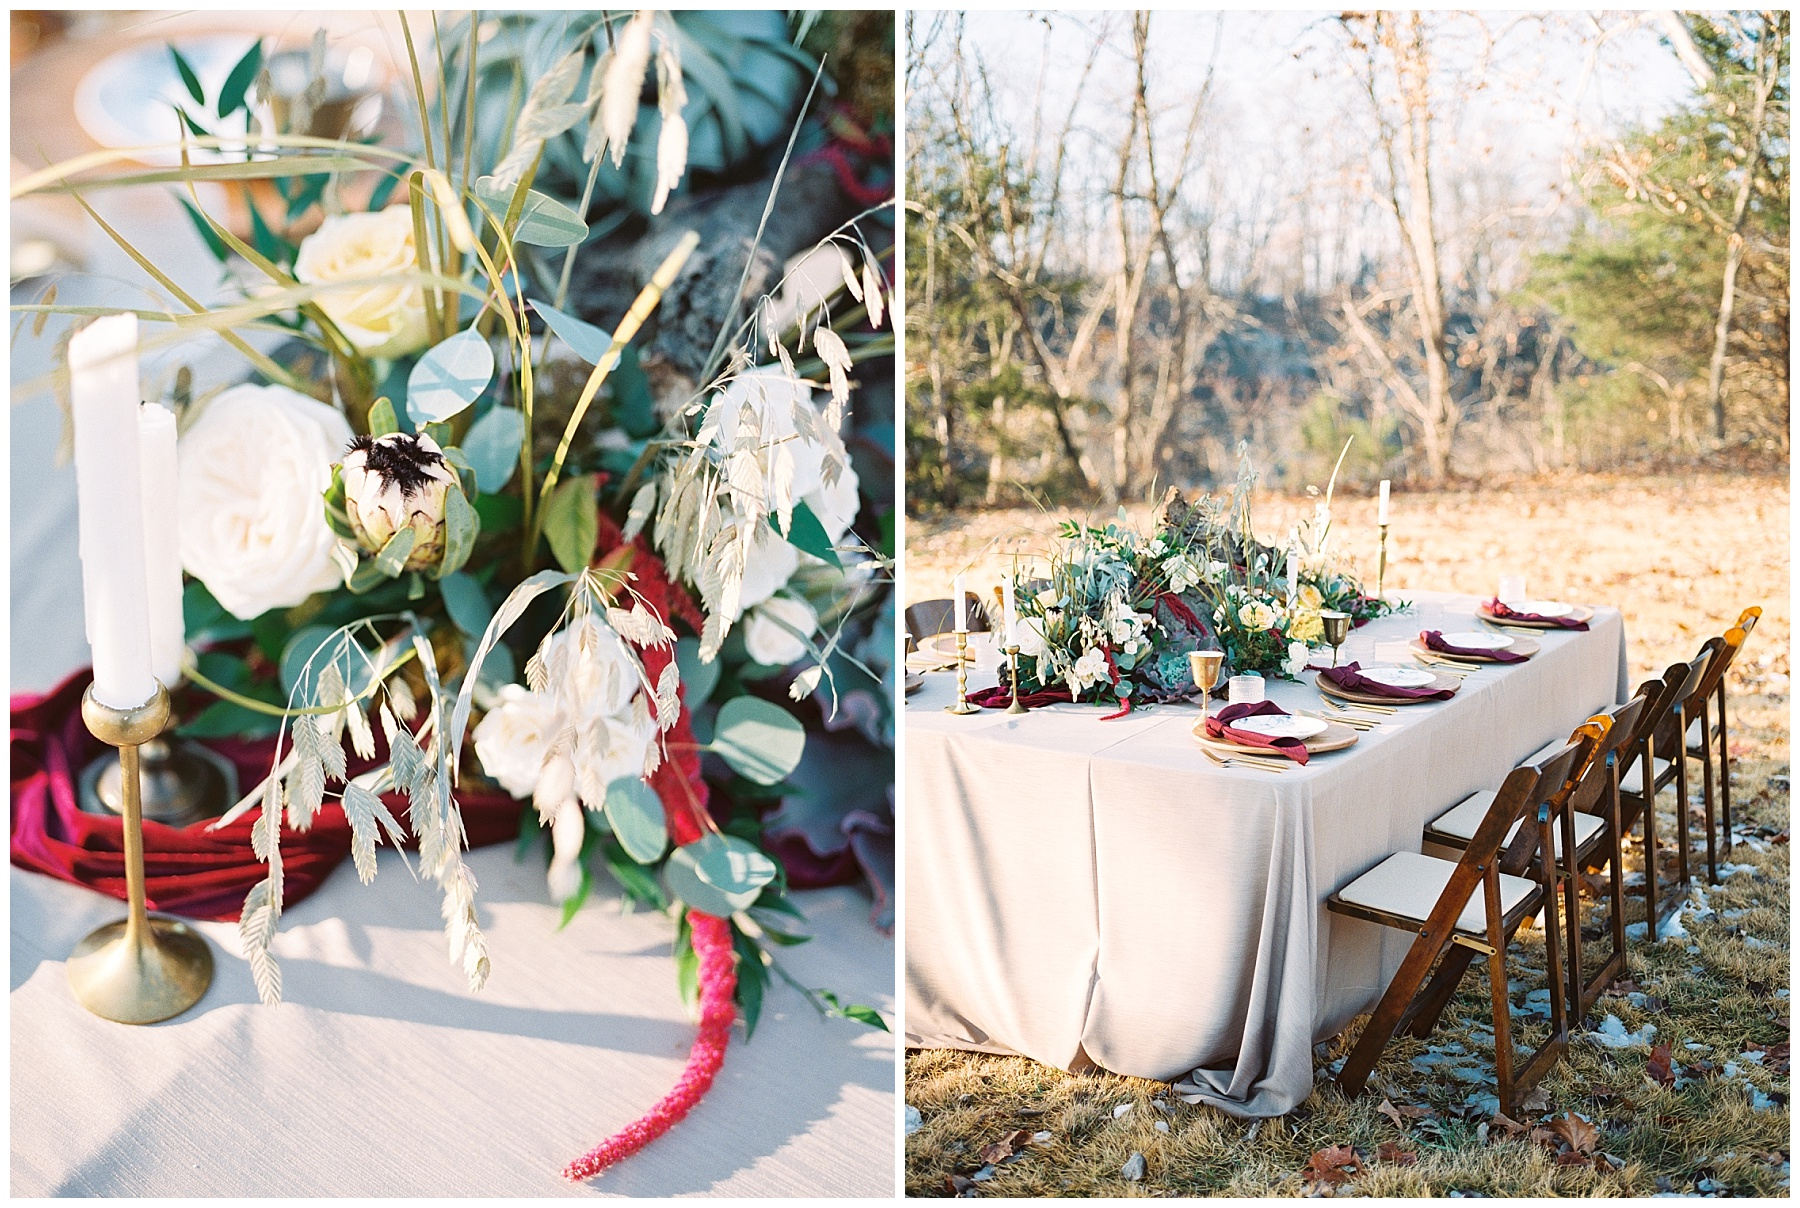 Snowy Winter Wedding at Wildcliff Events Lake With Earthy Jewel Tones and Organic Refined Style by Kelsi Kliethermes Photography Kansas City Missouri Wedding Photographer_0078.jpg